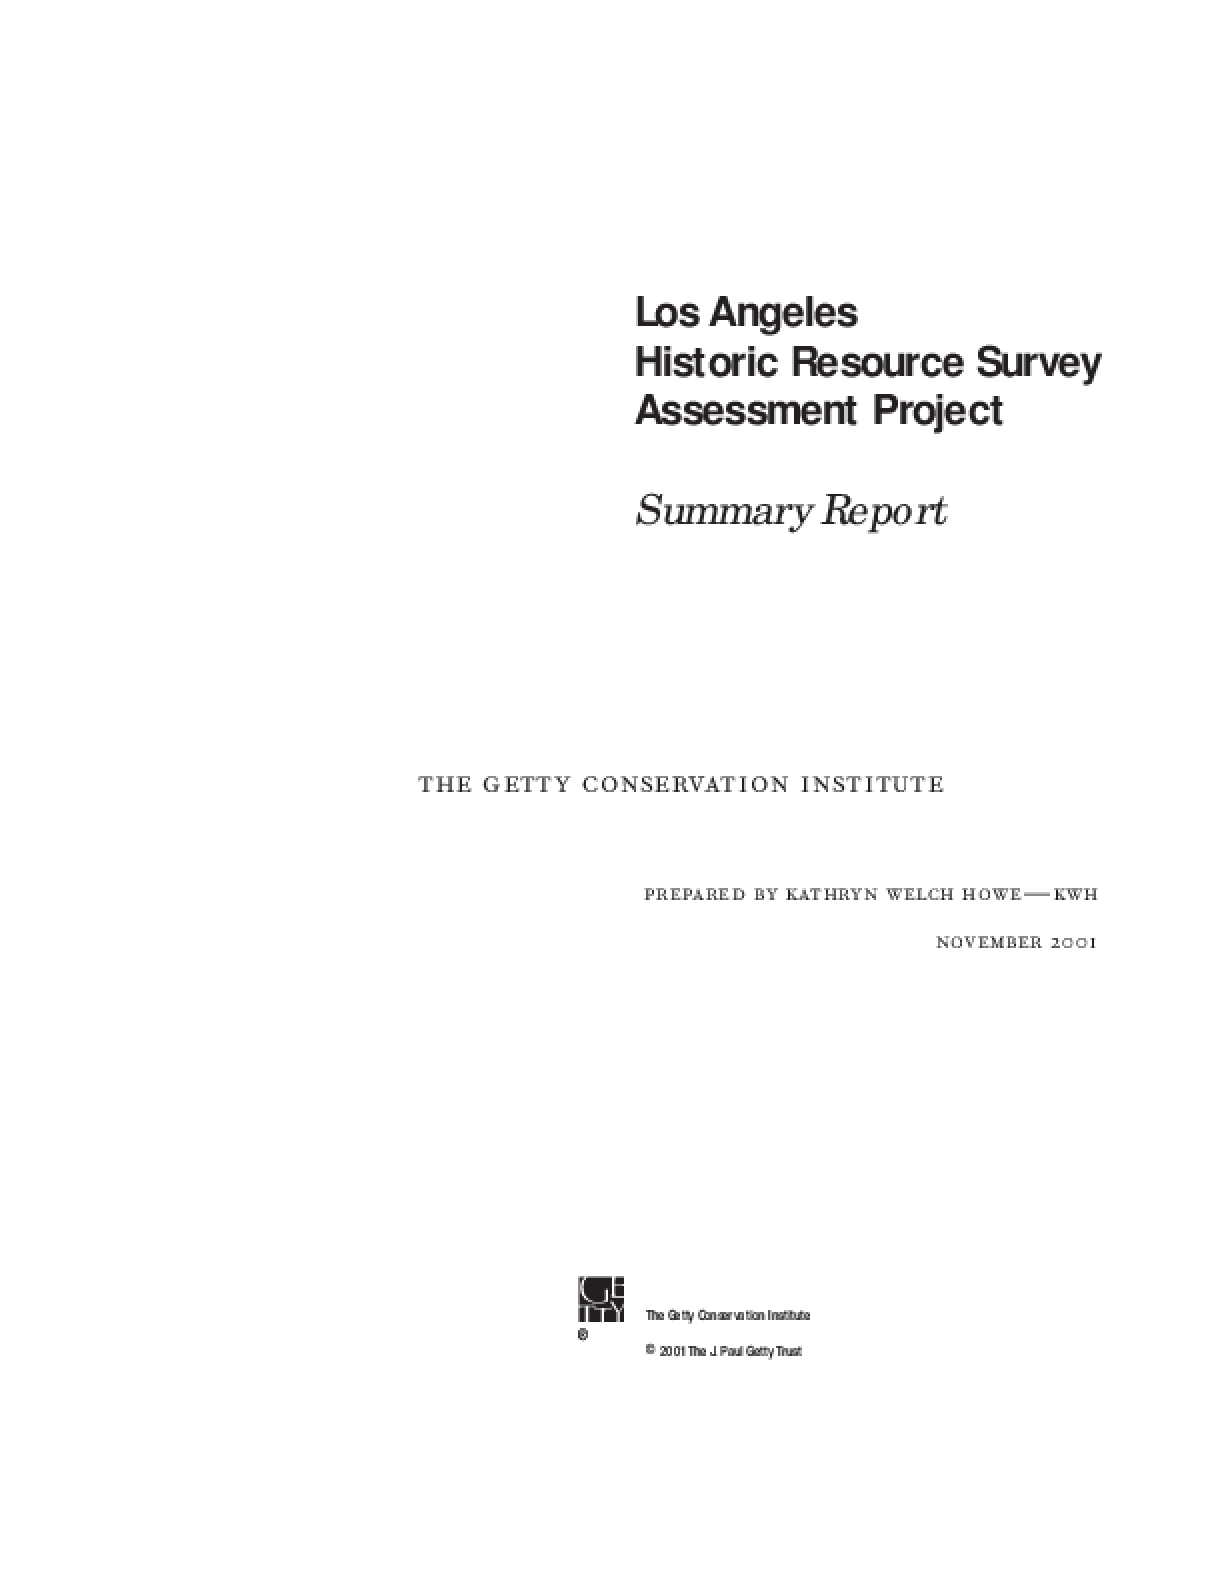 Los Angeles Historic Resource Survey Assessment Project: Summary Report